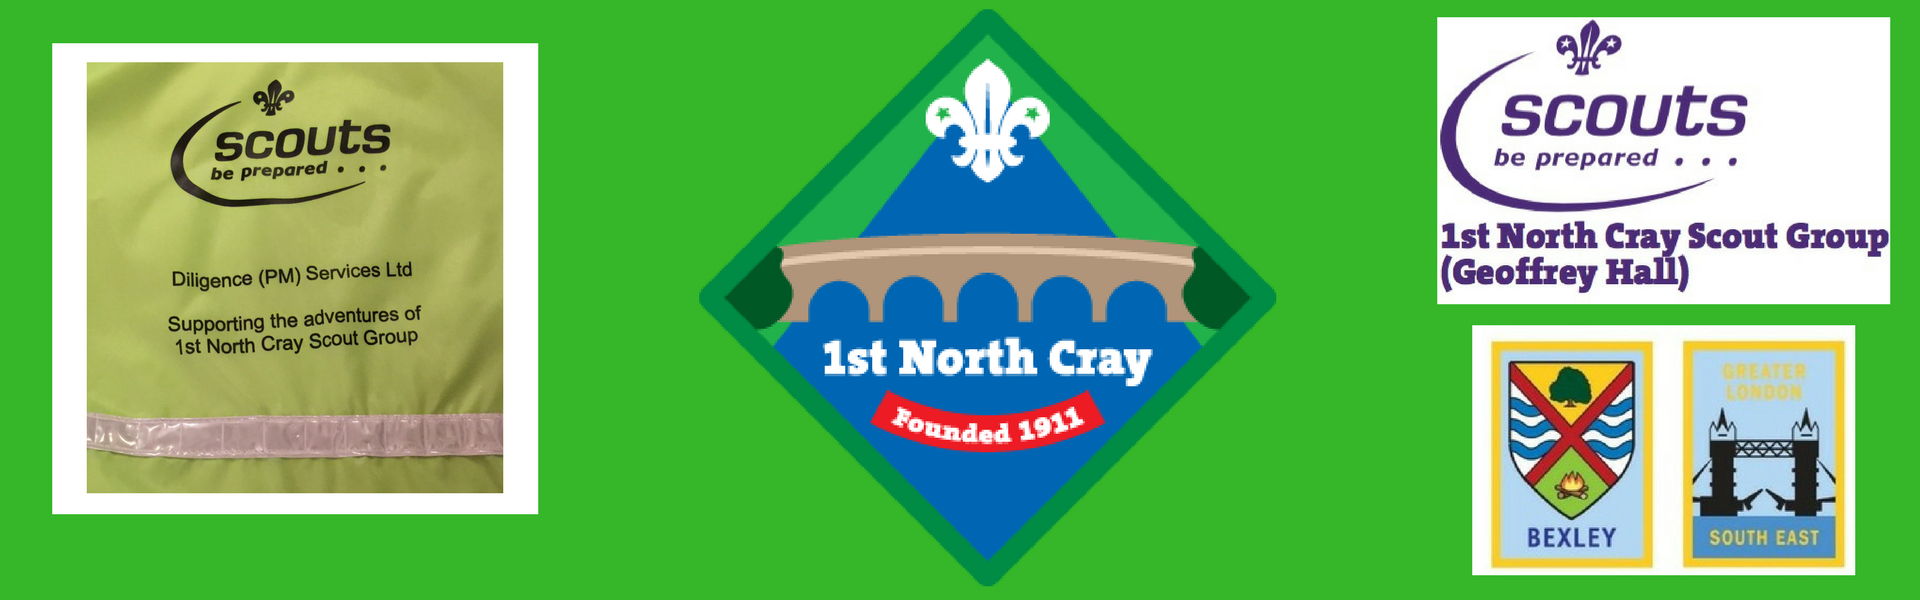 1st North Cray Scout Group logo